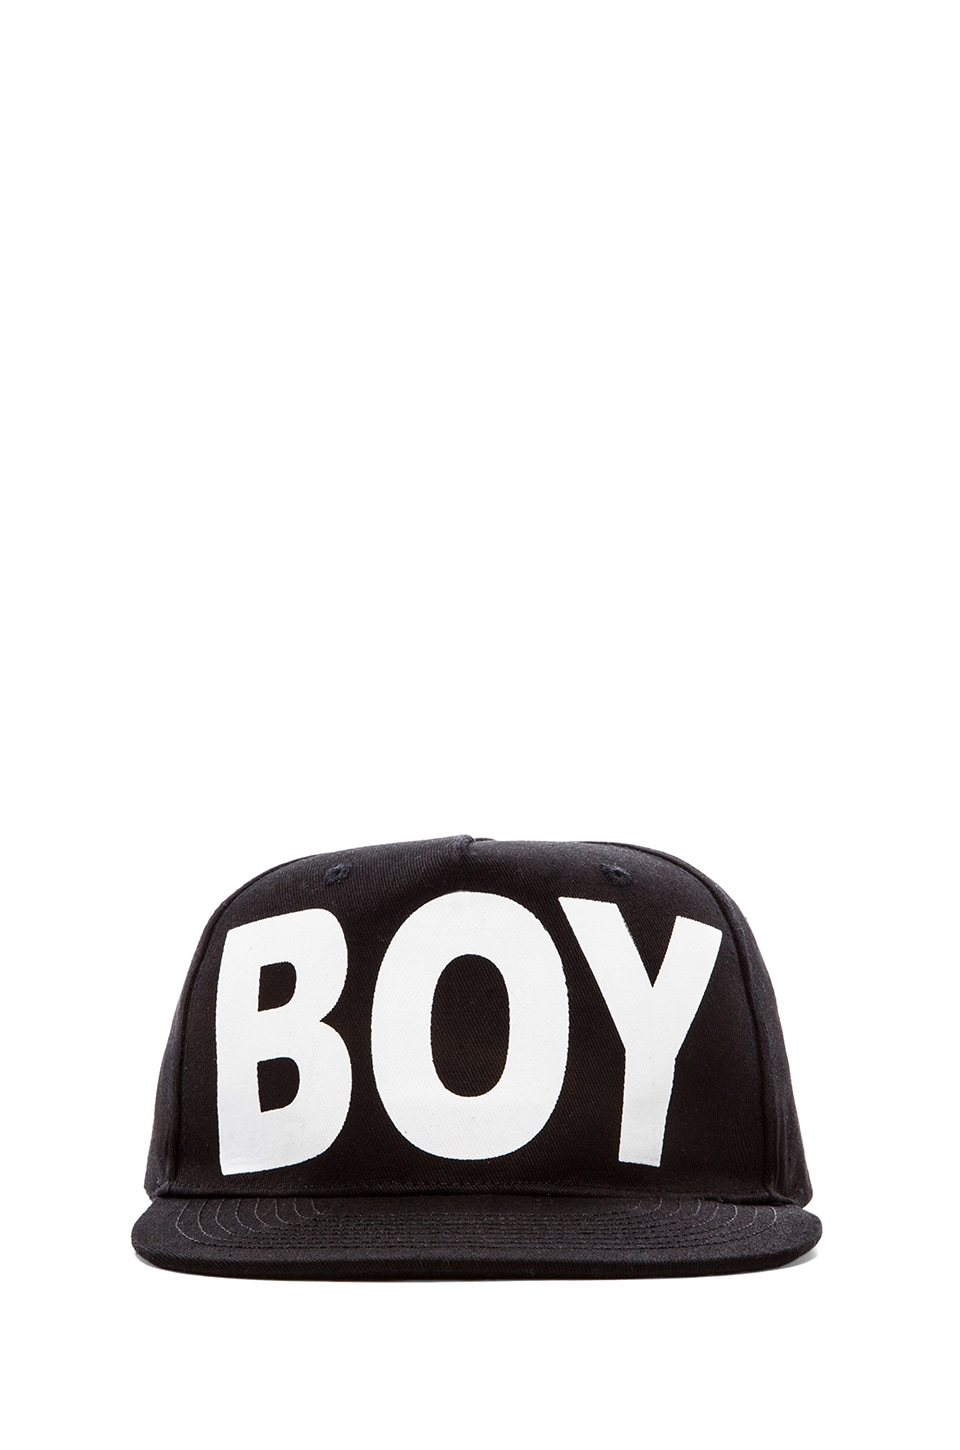 BOY London Boy Cap in Black/ White